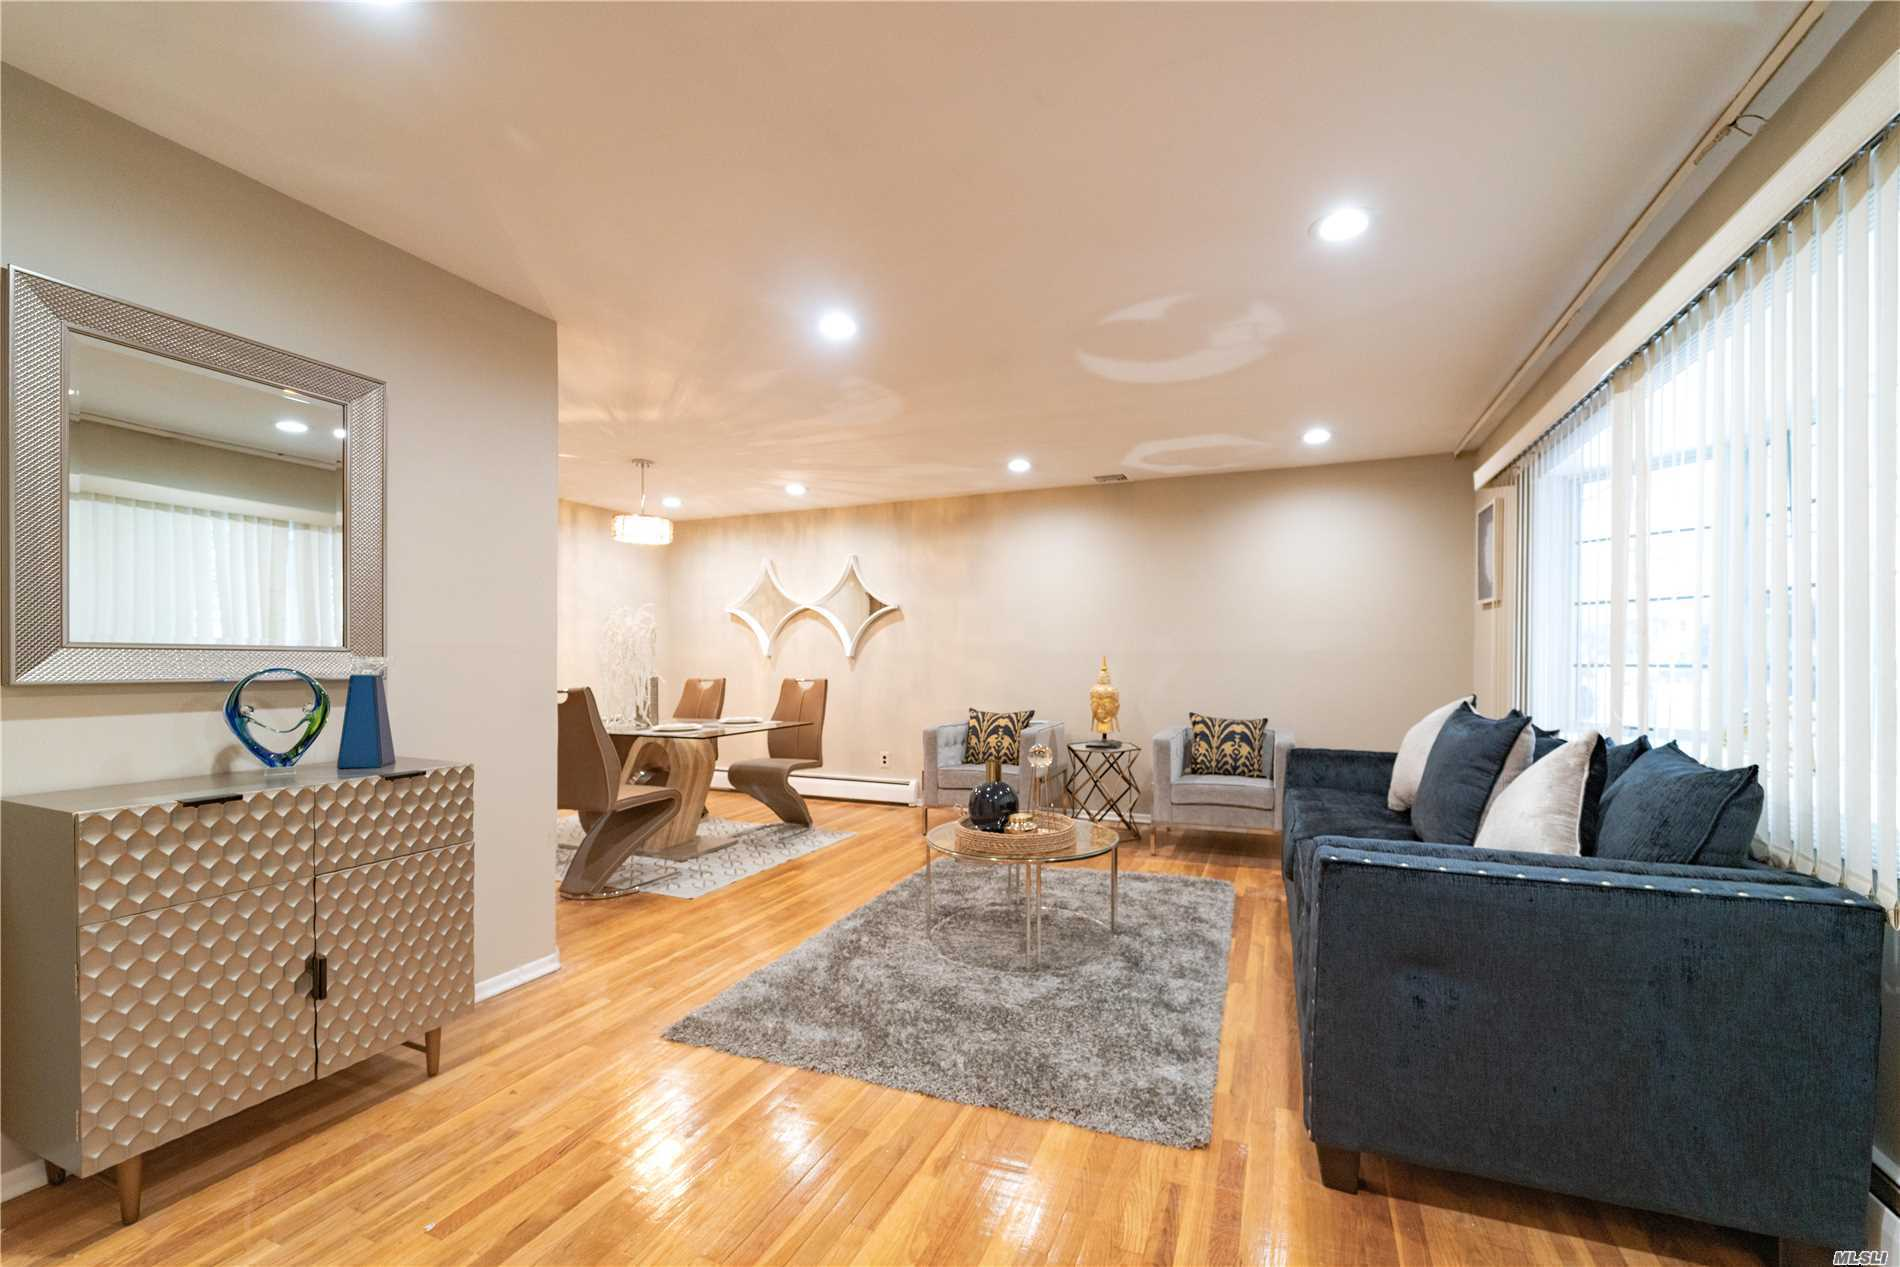 Welcome To This Gorgeous House In Hicksville. This House Has 3 Bedrooms And 2 Bathrooms. Modern Updated Kitchen With Ss Appliances & Granite Counter. Full Basement. Wood Floors. Gas Heating, Central Ac, Nice Breezy Backyard. Great Location Of Hicksville Makes It Close To Lirr, Shopping.